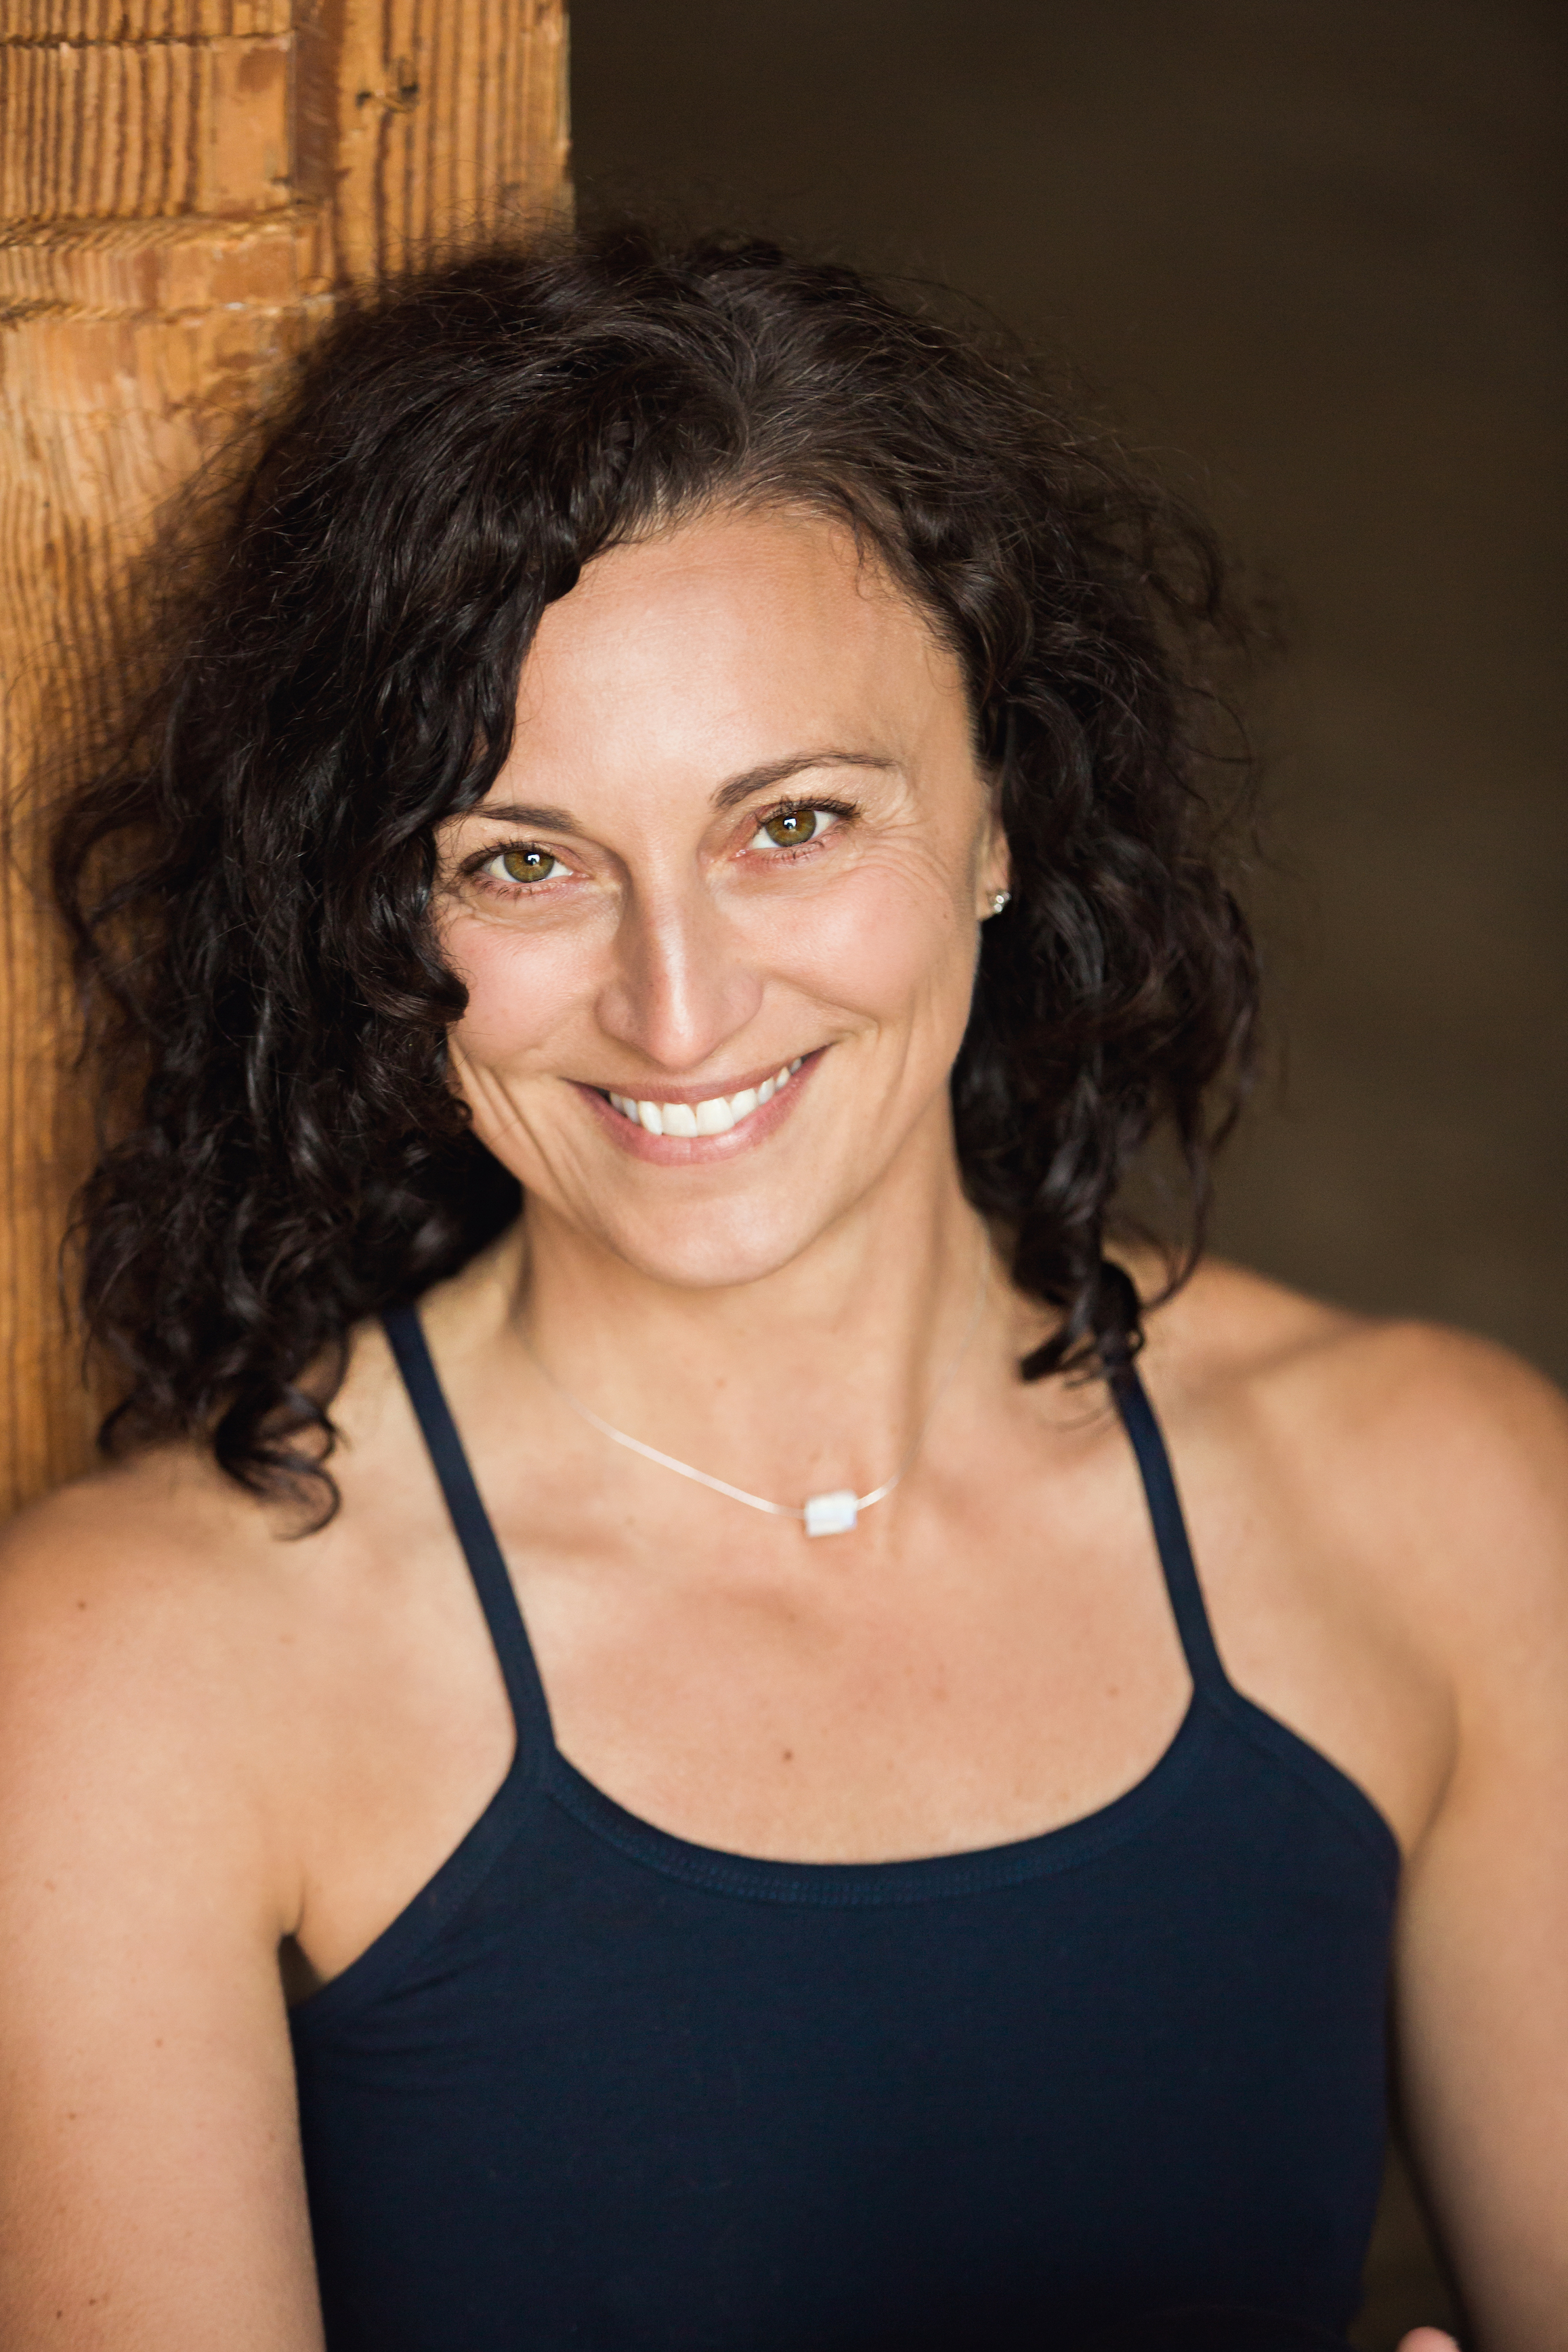 Terry Cockburn, yoga, yoga instructor, workshops, teacher trainings, retreats